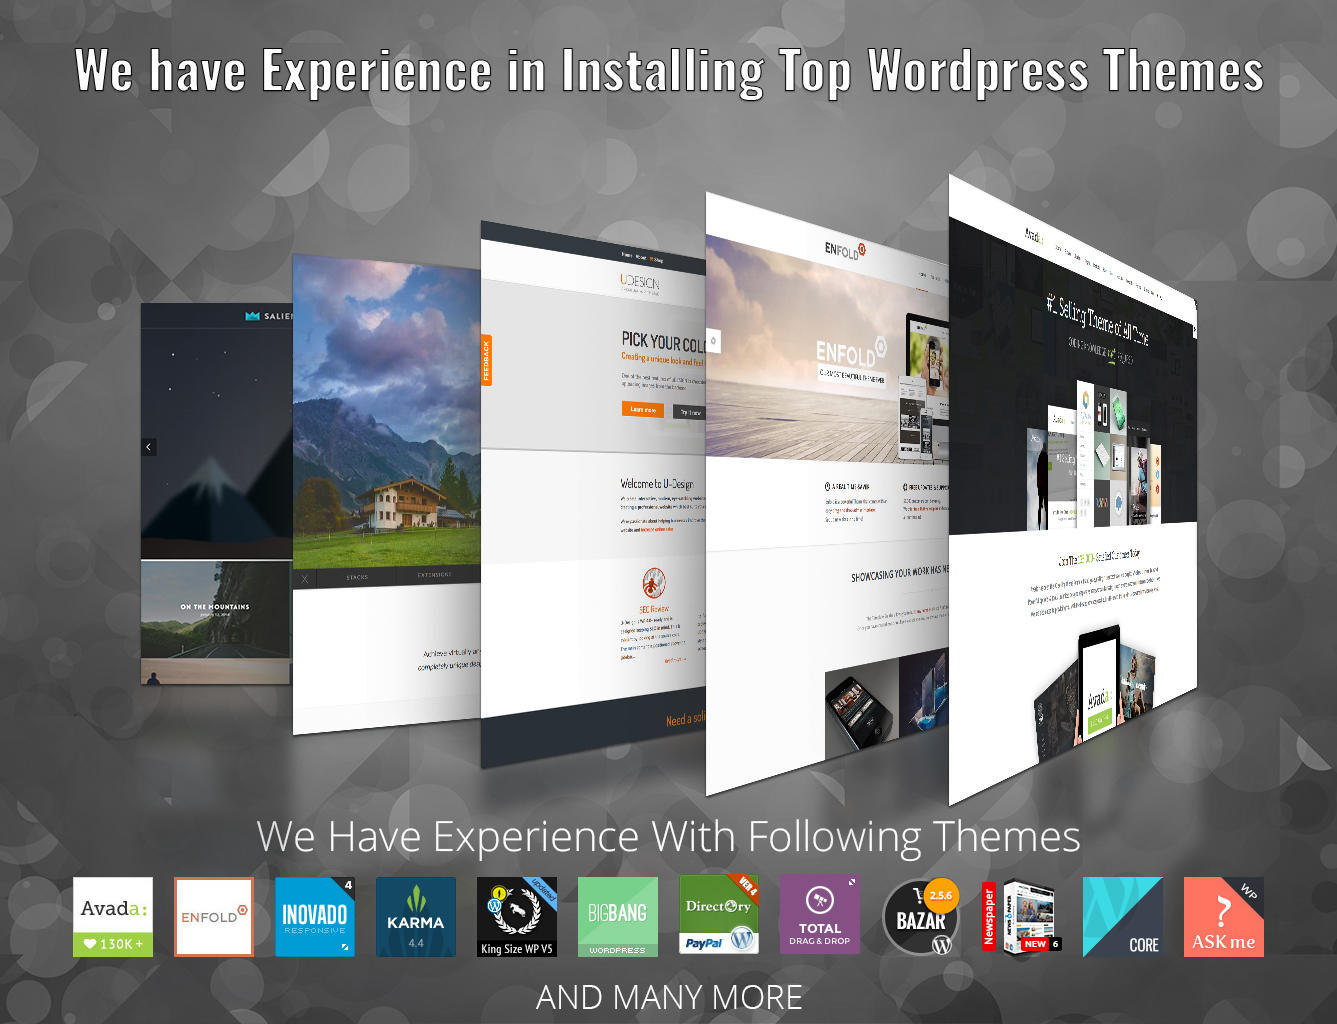 Wordpress Theme Installation (Install Theme,Import Demo Content,Add Logo) by snilesh - 82405